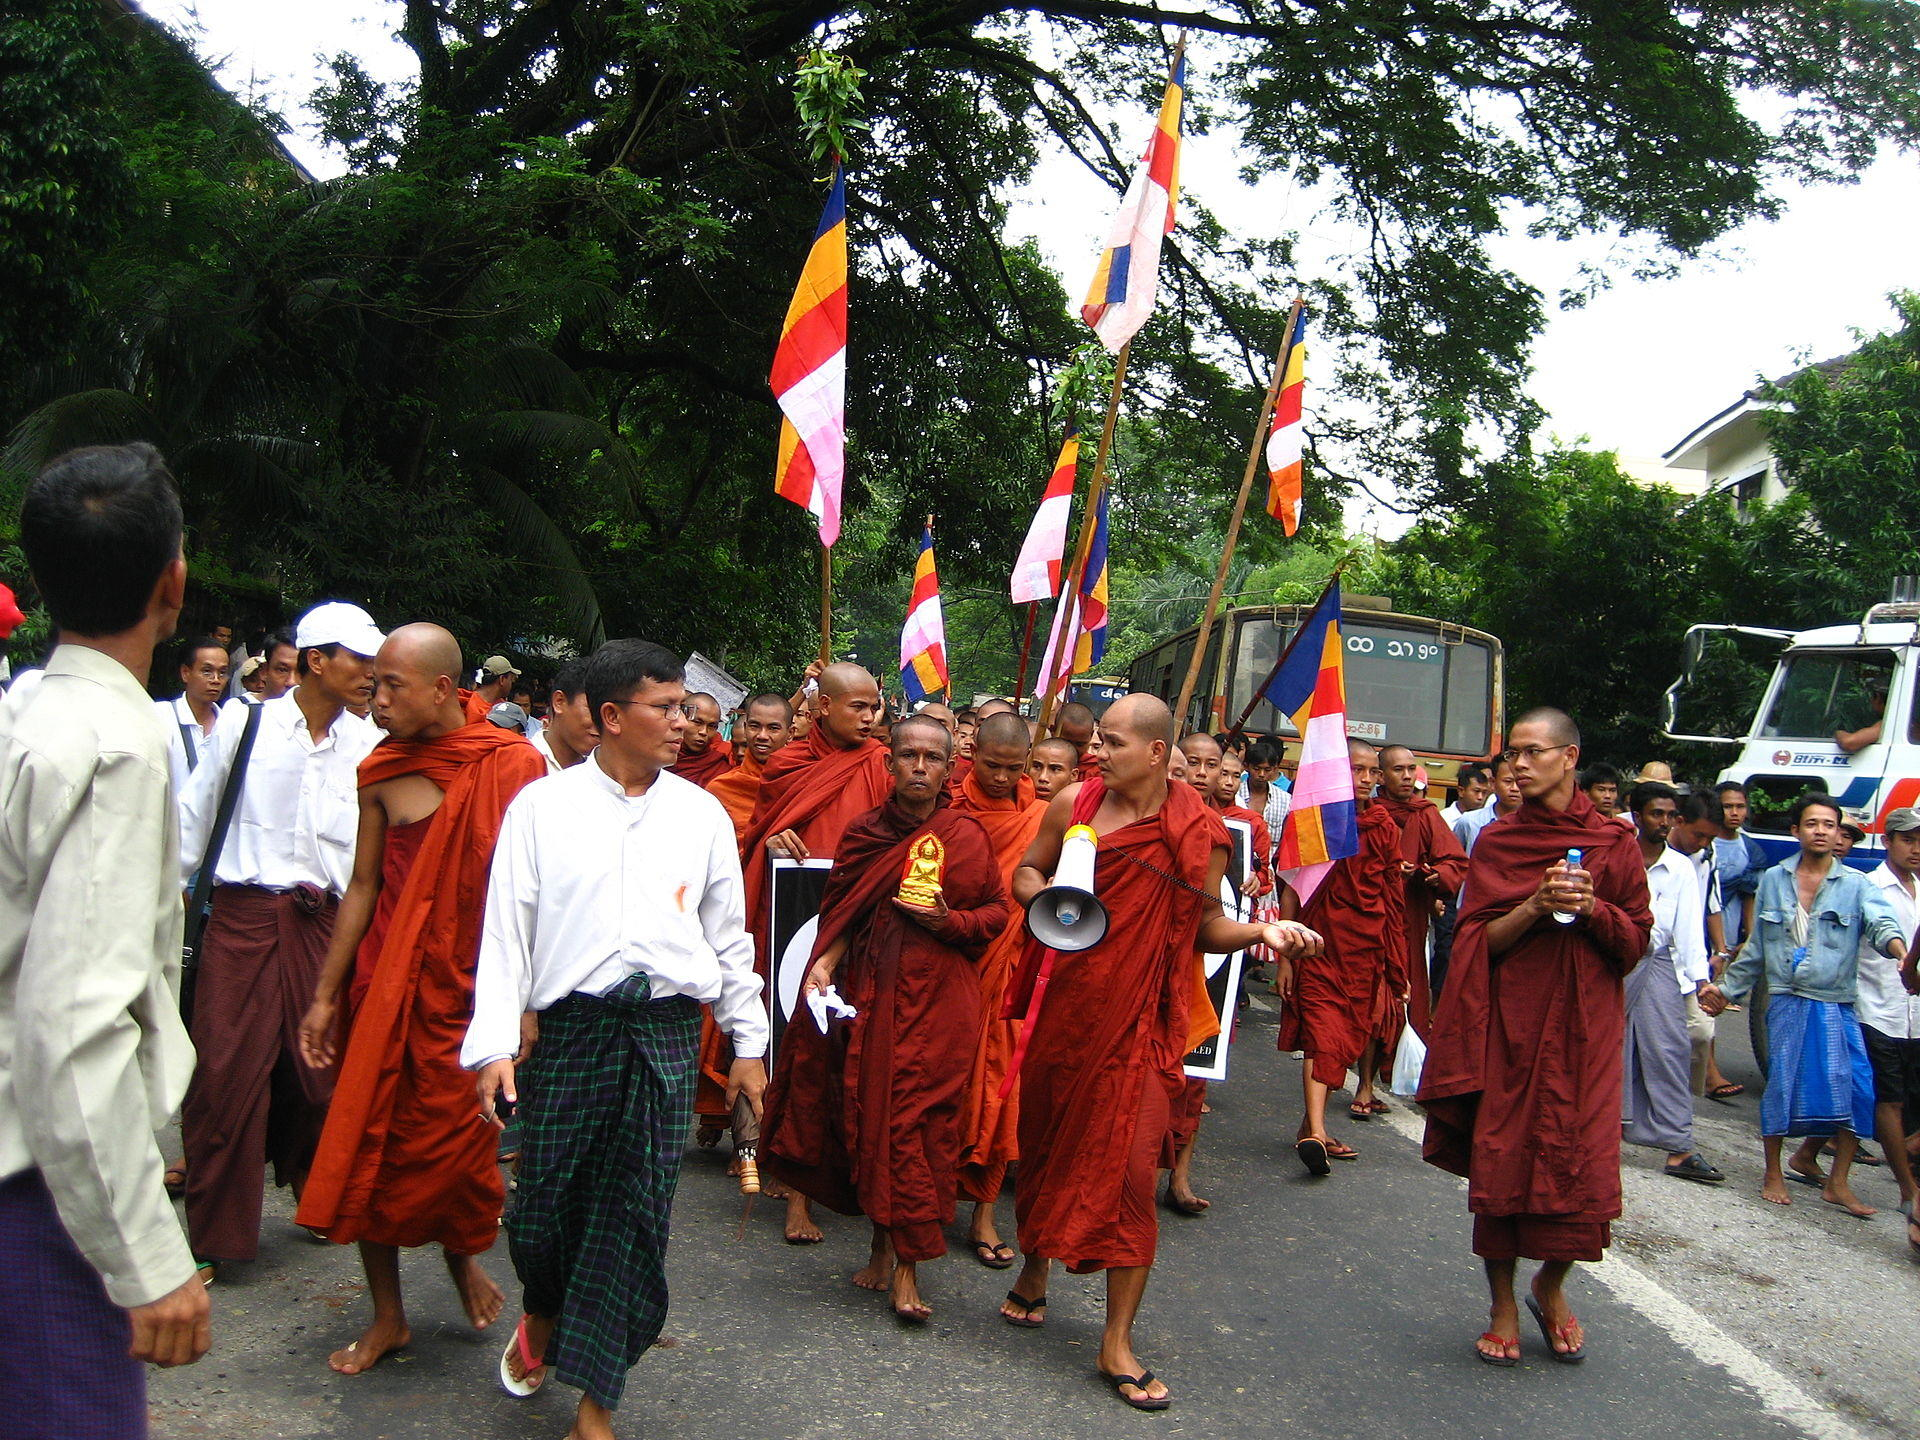 Monks in Myanmar